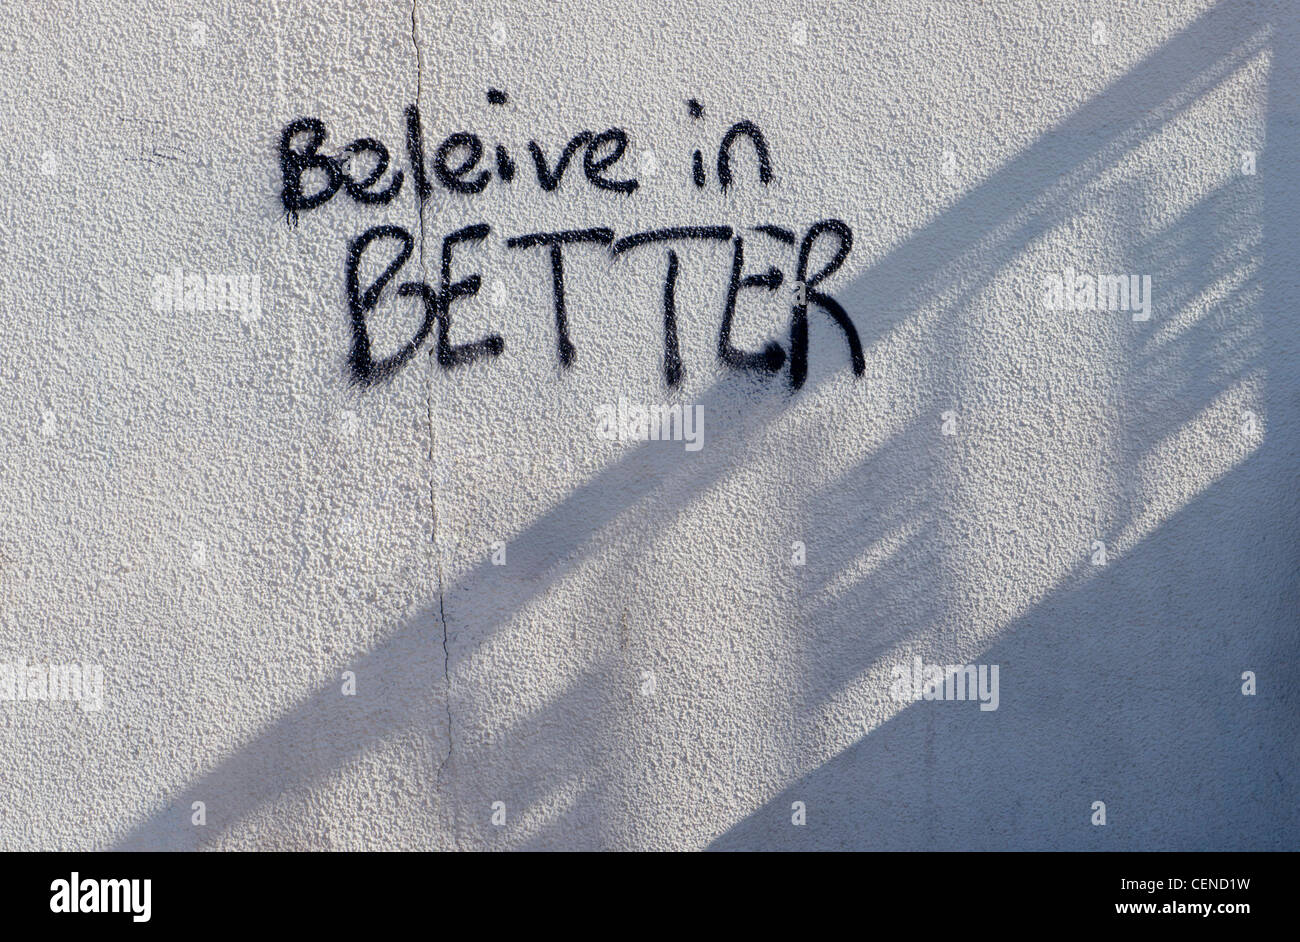 Europe, UK, England, graffiti believe in better - Stock Image